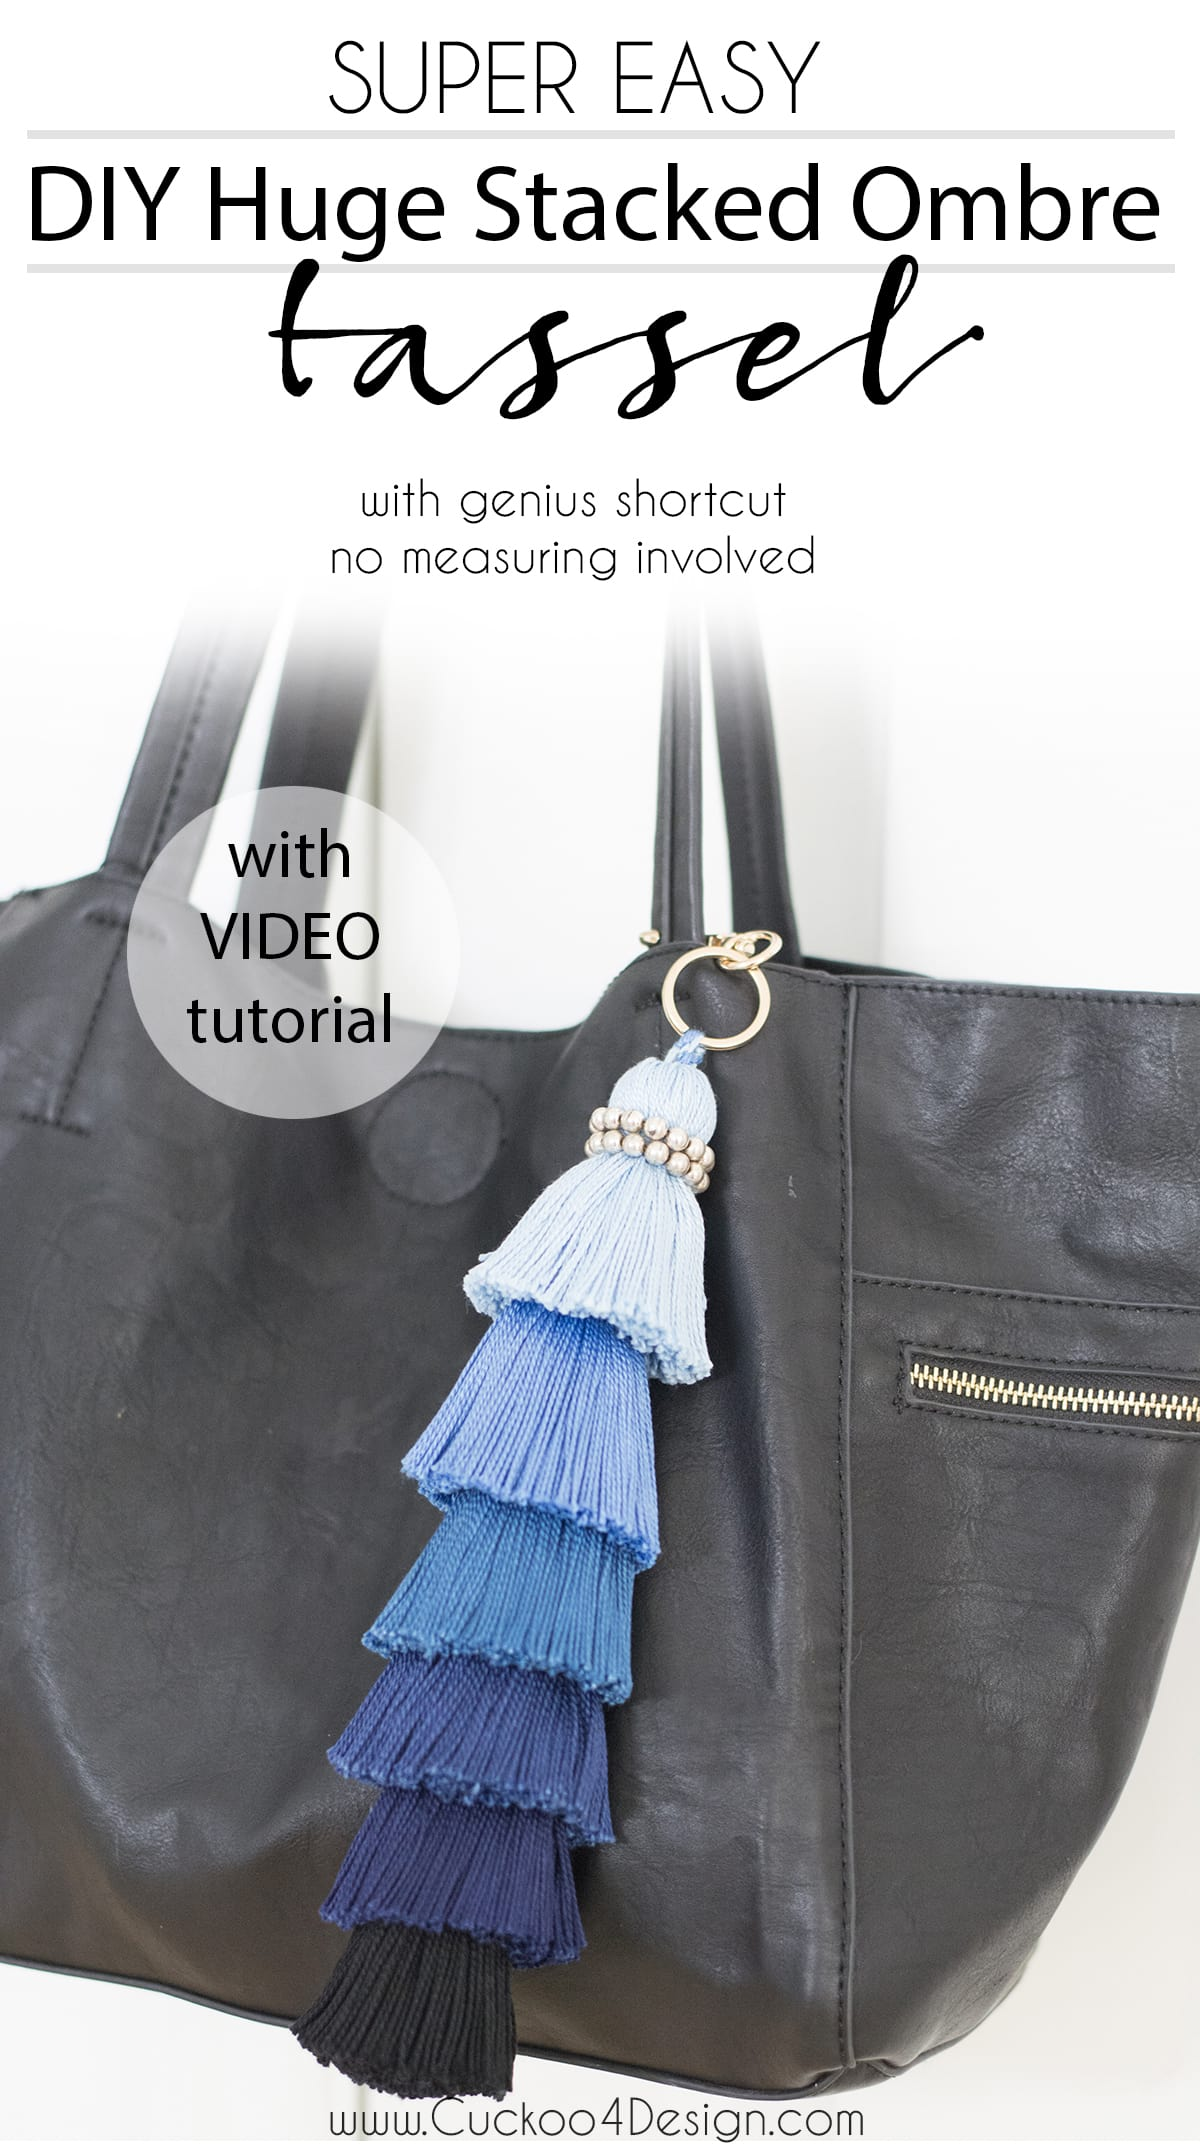 DIY huge stacked ombre tassel with genius shortcut. No measuring involved! | DIY ombre tassel | how to make a stacked ombre tassel | tassel DIY | blue ombre tassel | purse tassel | home decor tassel #tassel #tassels #DIYtassel